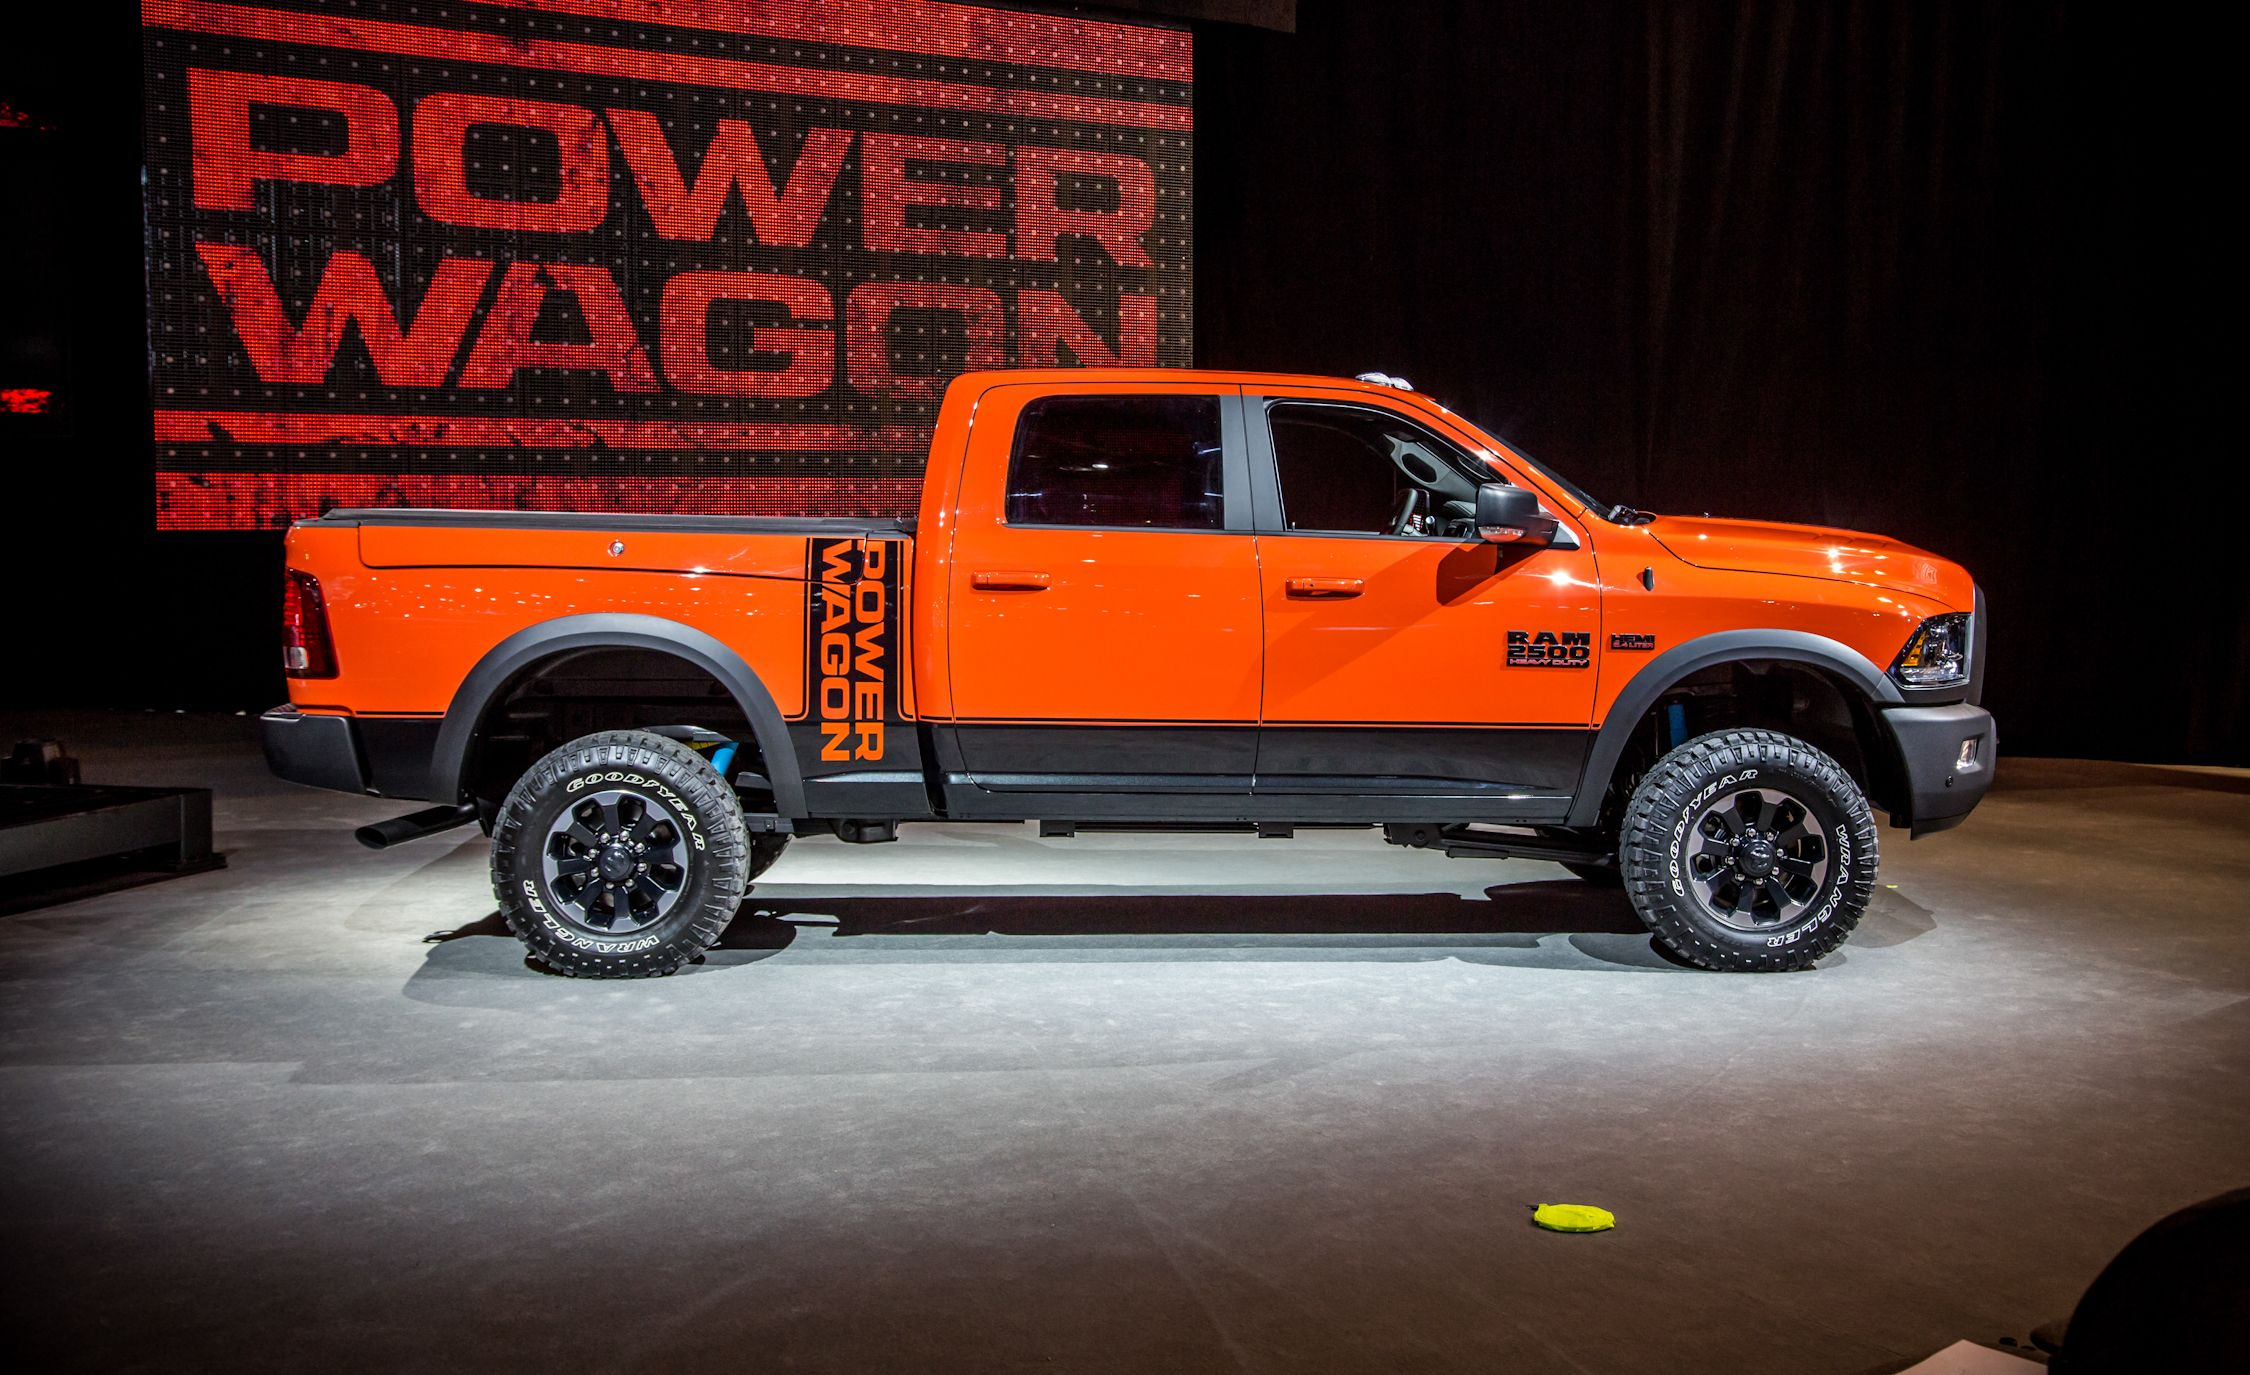 2017 ram power wagon pictures photo gallery car and driver. Black Bedroom Furniture Sets. Home Design Ideas